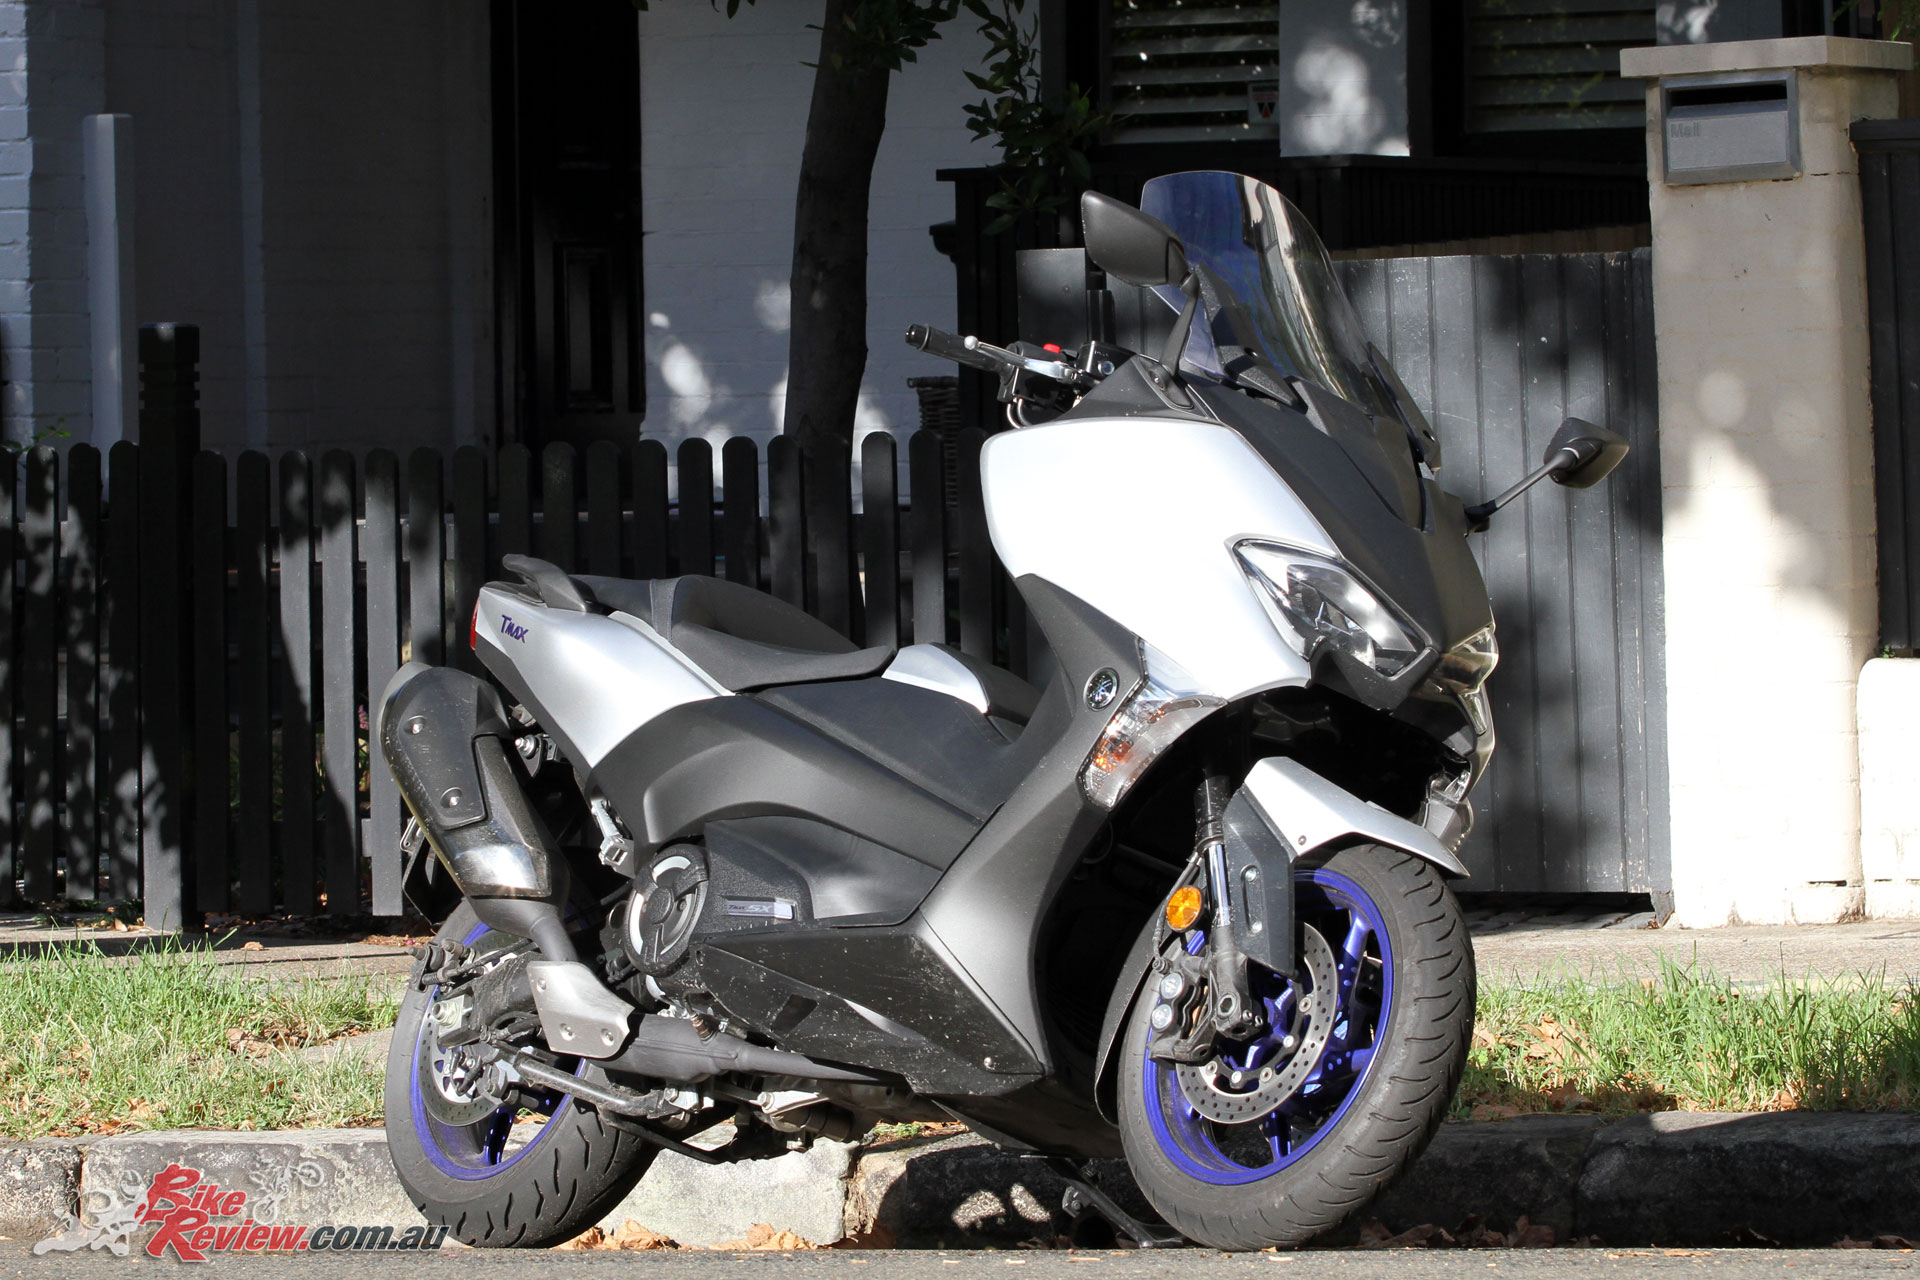 Review: 2018 Yamaha TMax 530 SX LAMS - Bike Review